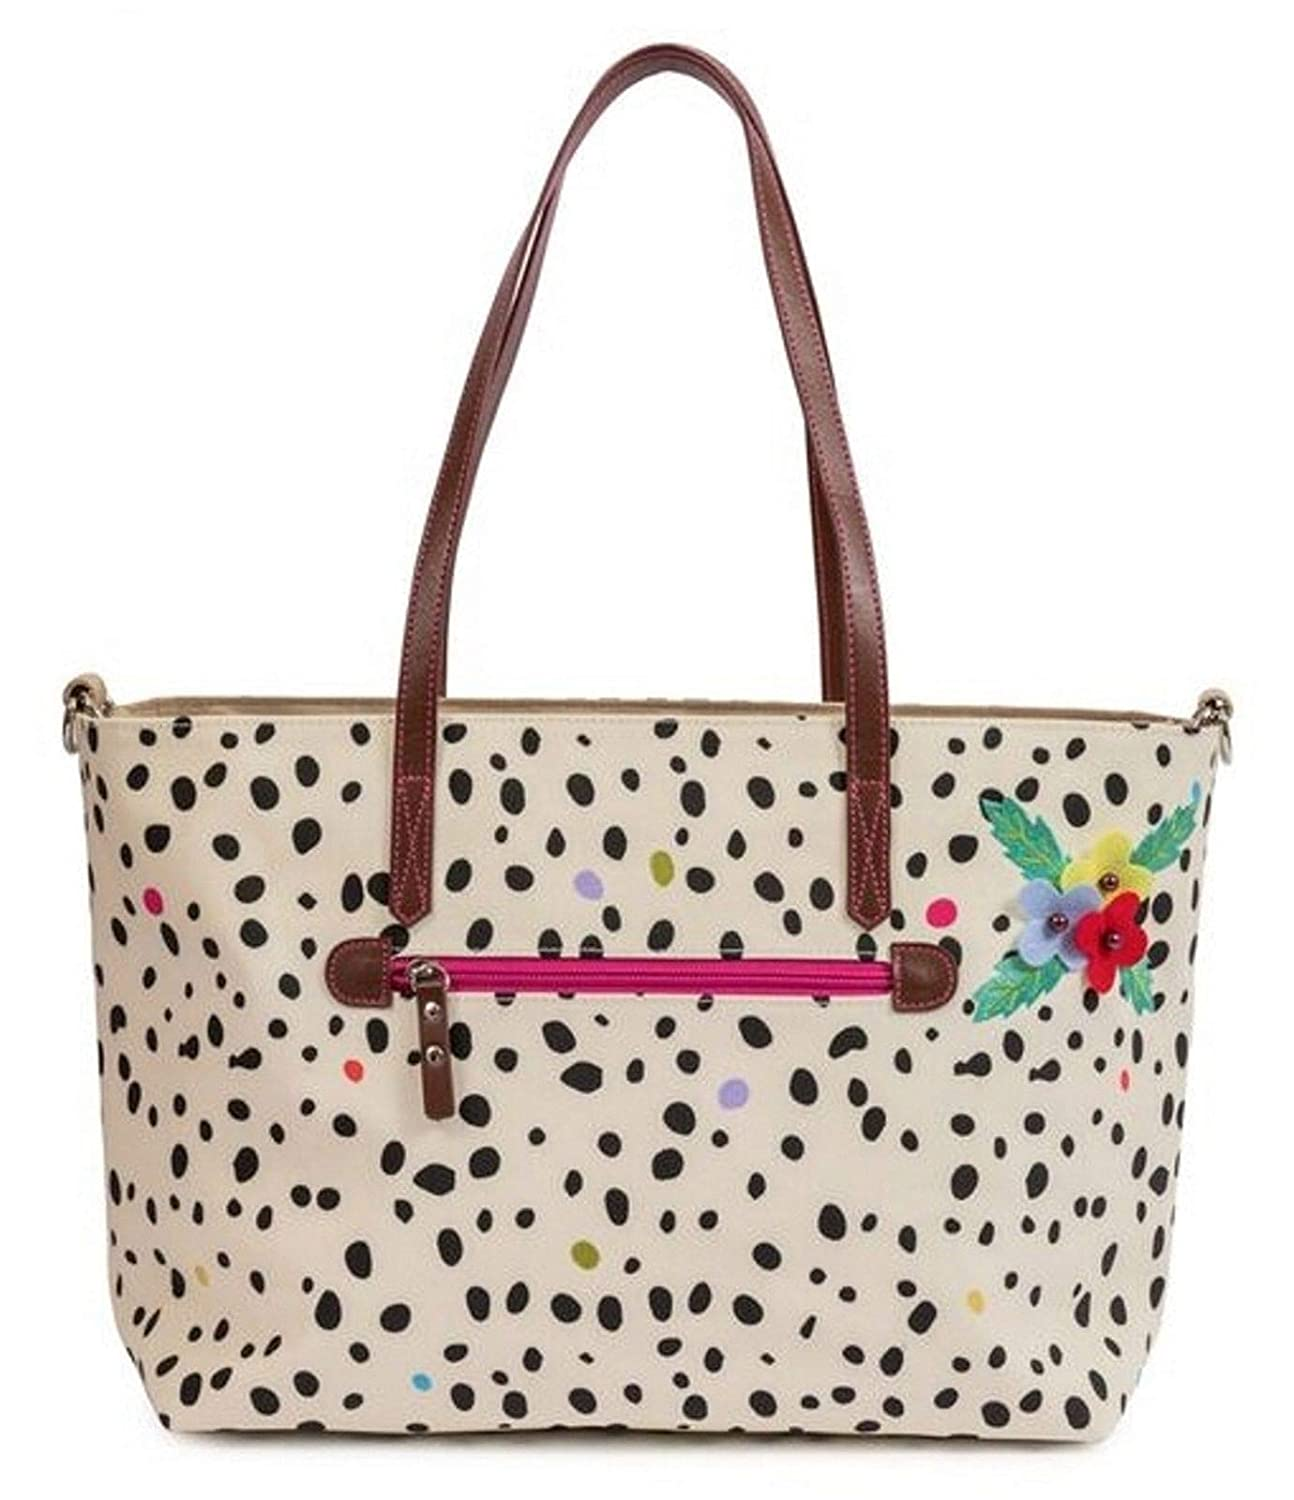 PINK LINING NOTTINGHILL TOTE DALMATION FEVER